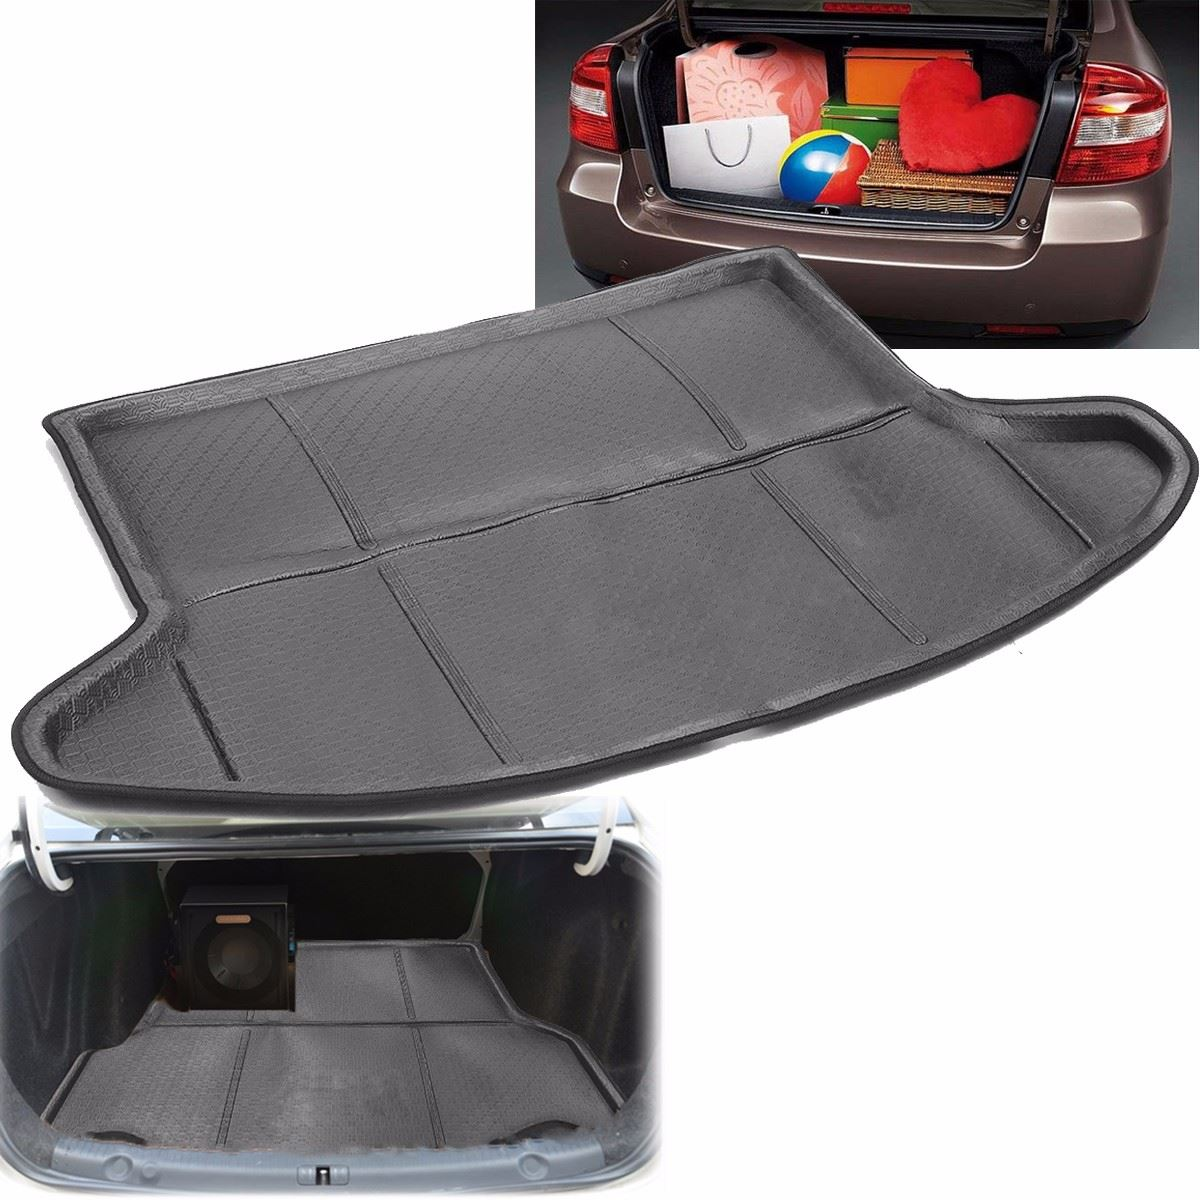 Auto tailcase mat mantle rear trunk cargo mat for mazda cx 5 2013 2014